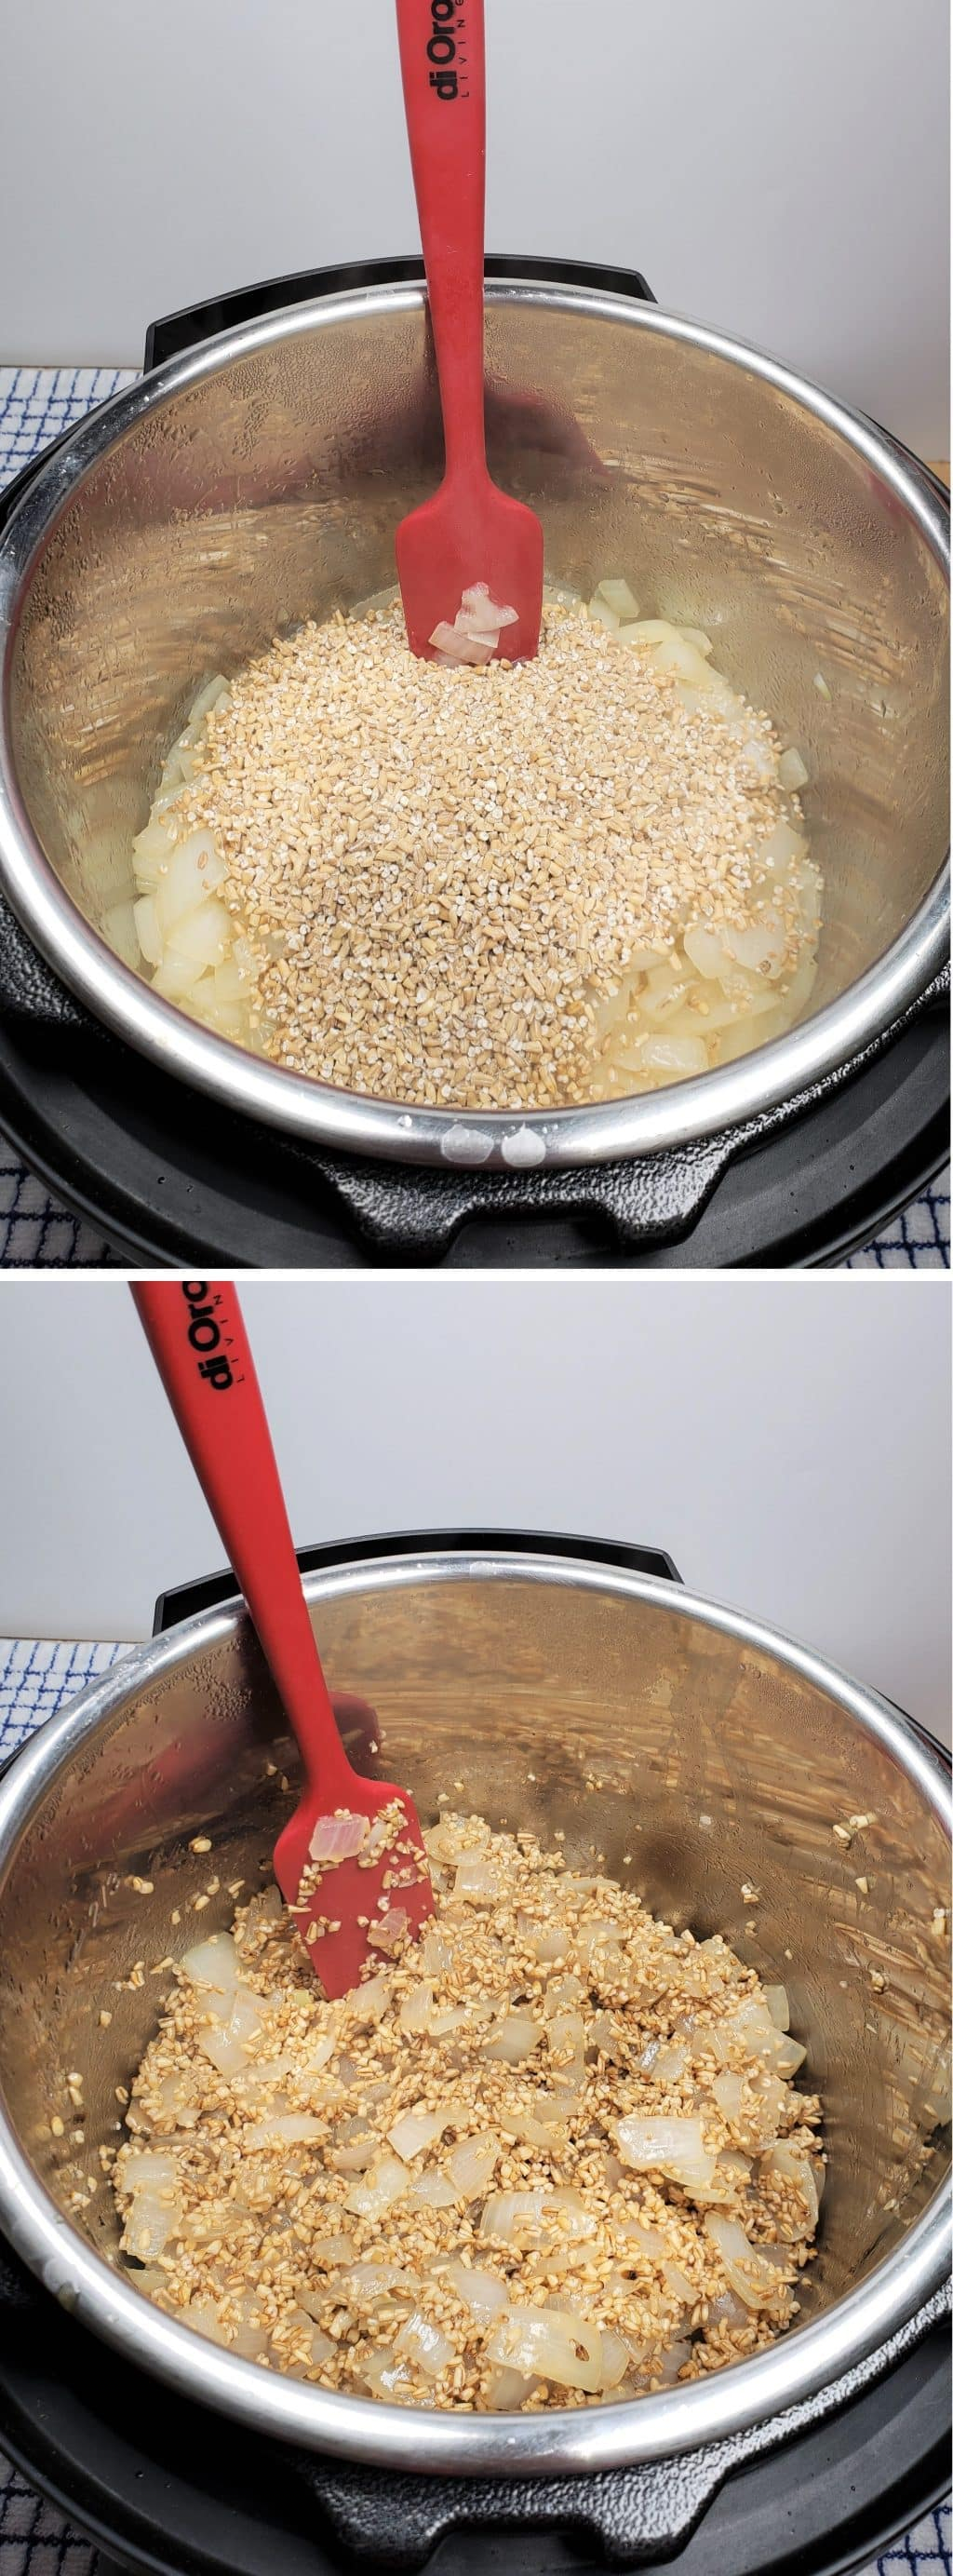 Oats Toasting and Absorbing Liquid